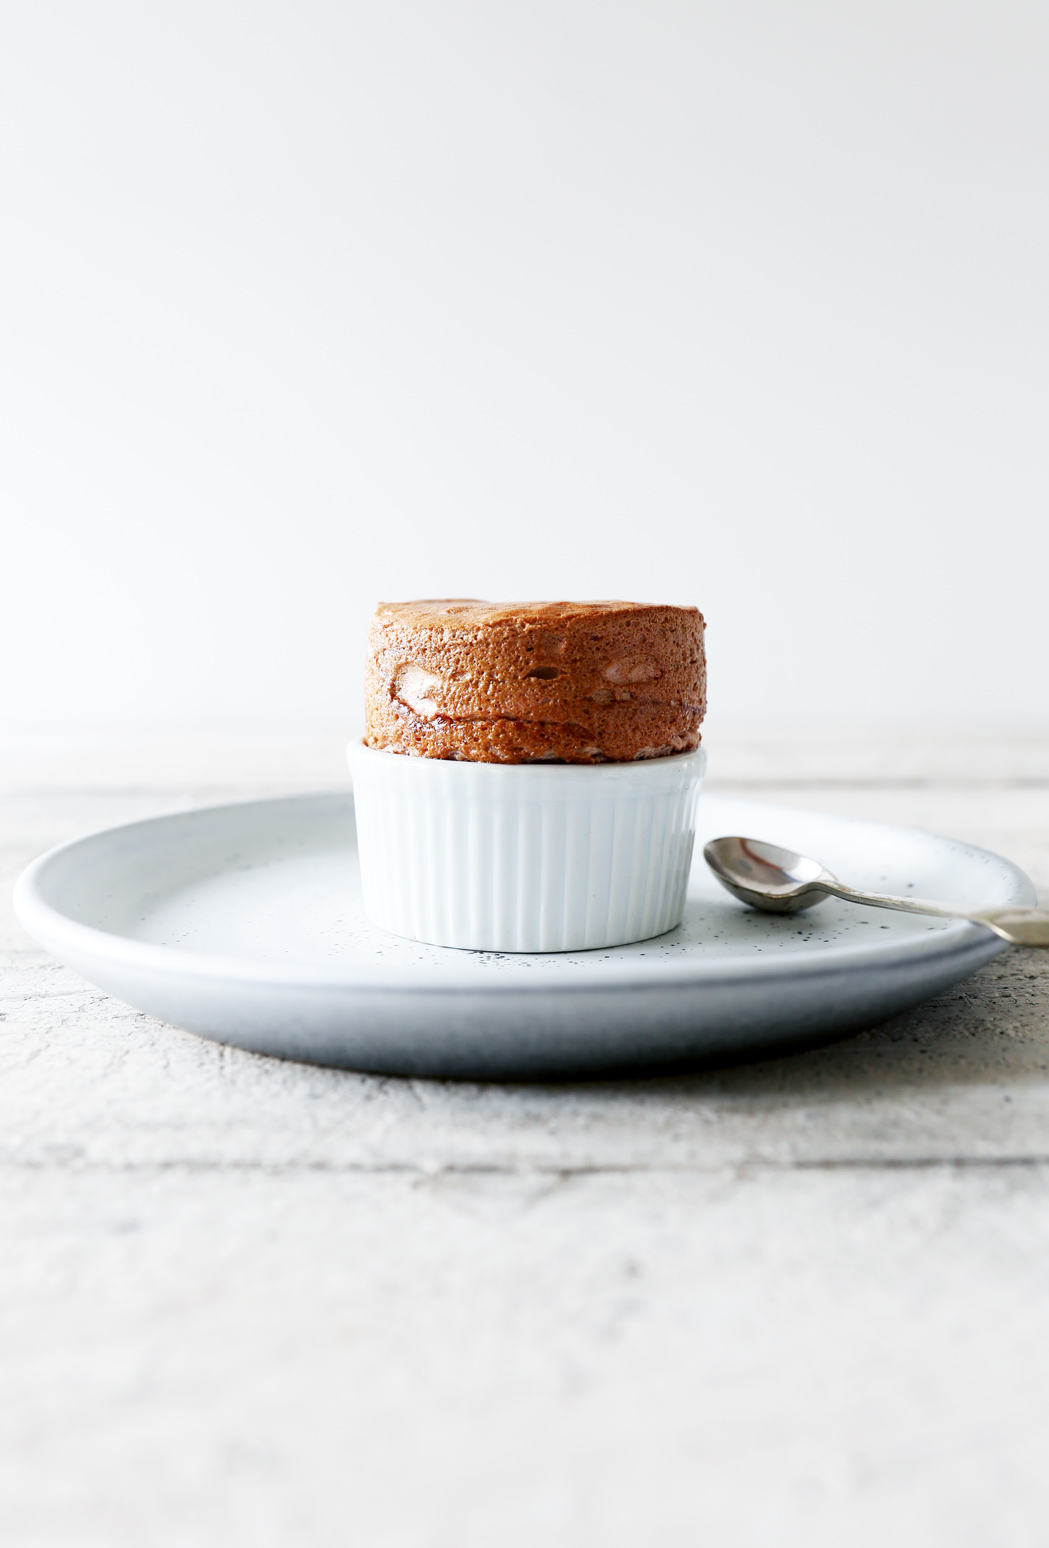 Caramelised Rhubarb Soufflé's with Coconut Caramel Anglaise